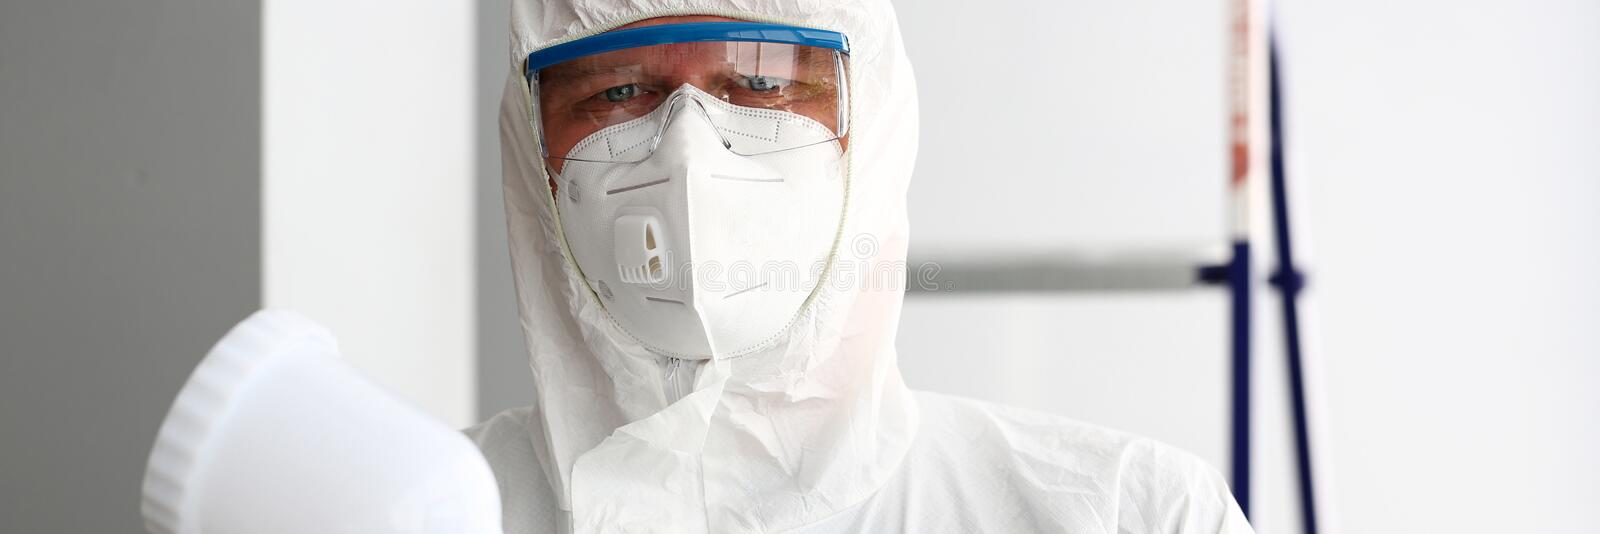 Workman hold in arm airbrush gun wearing protective suit royalty free stock photography